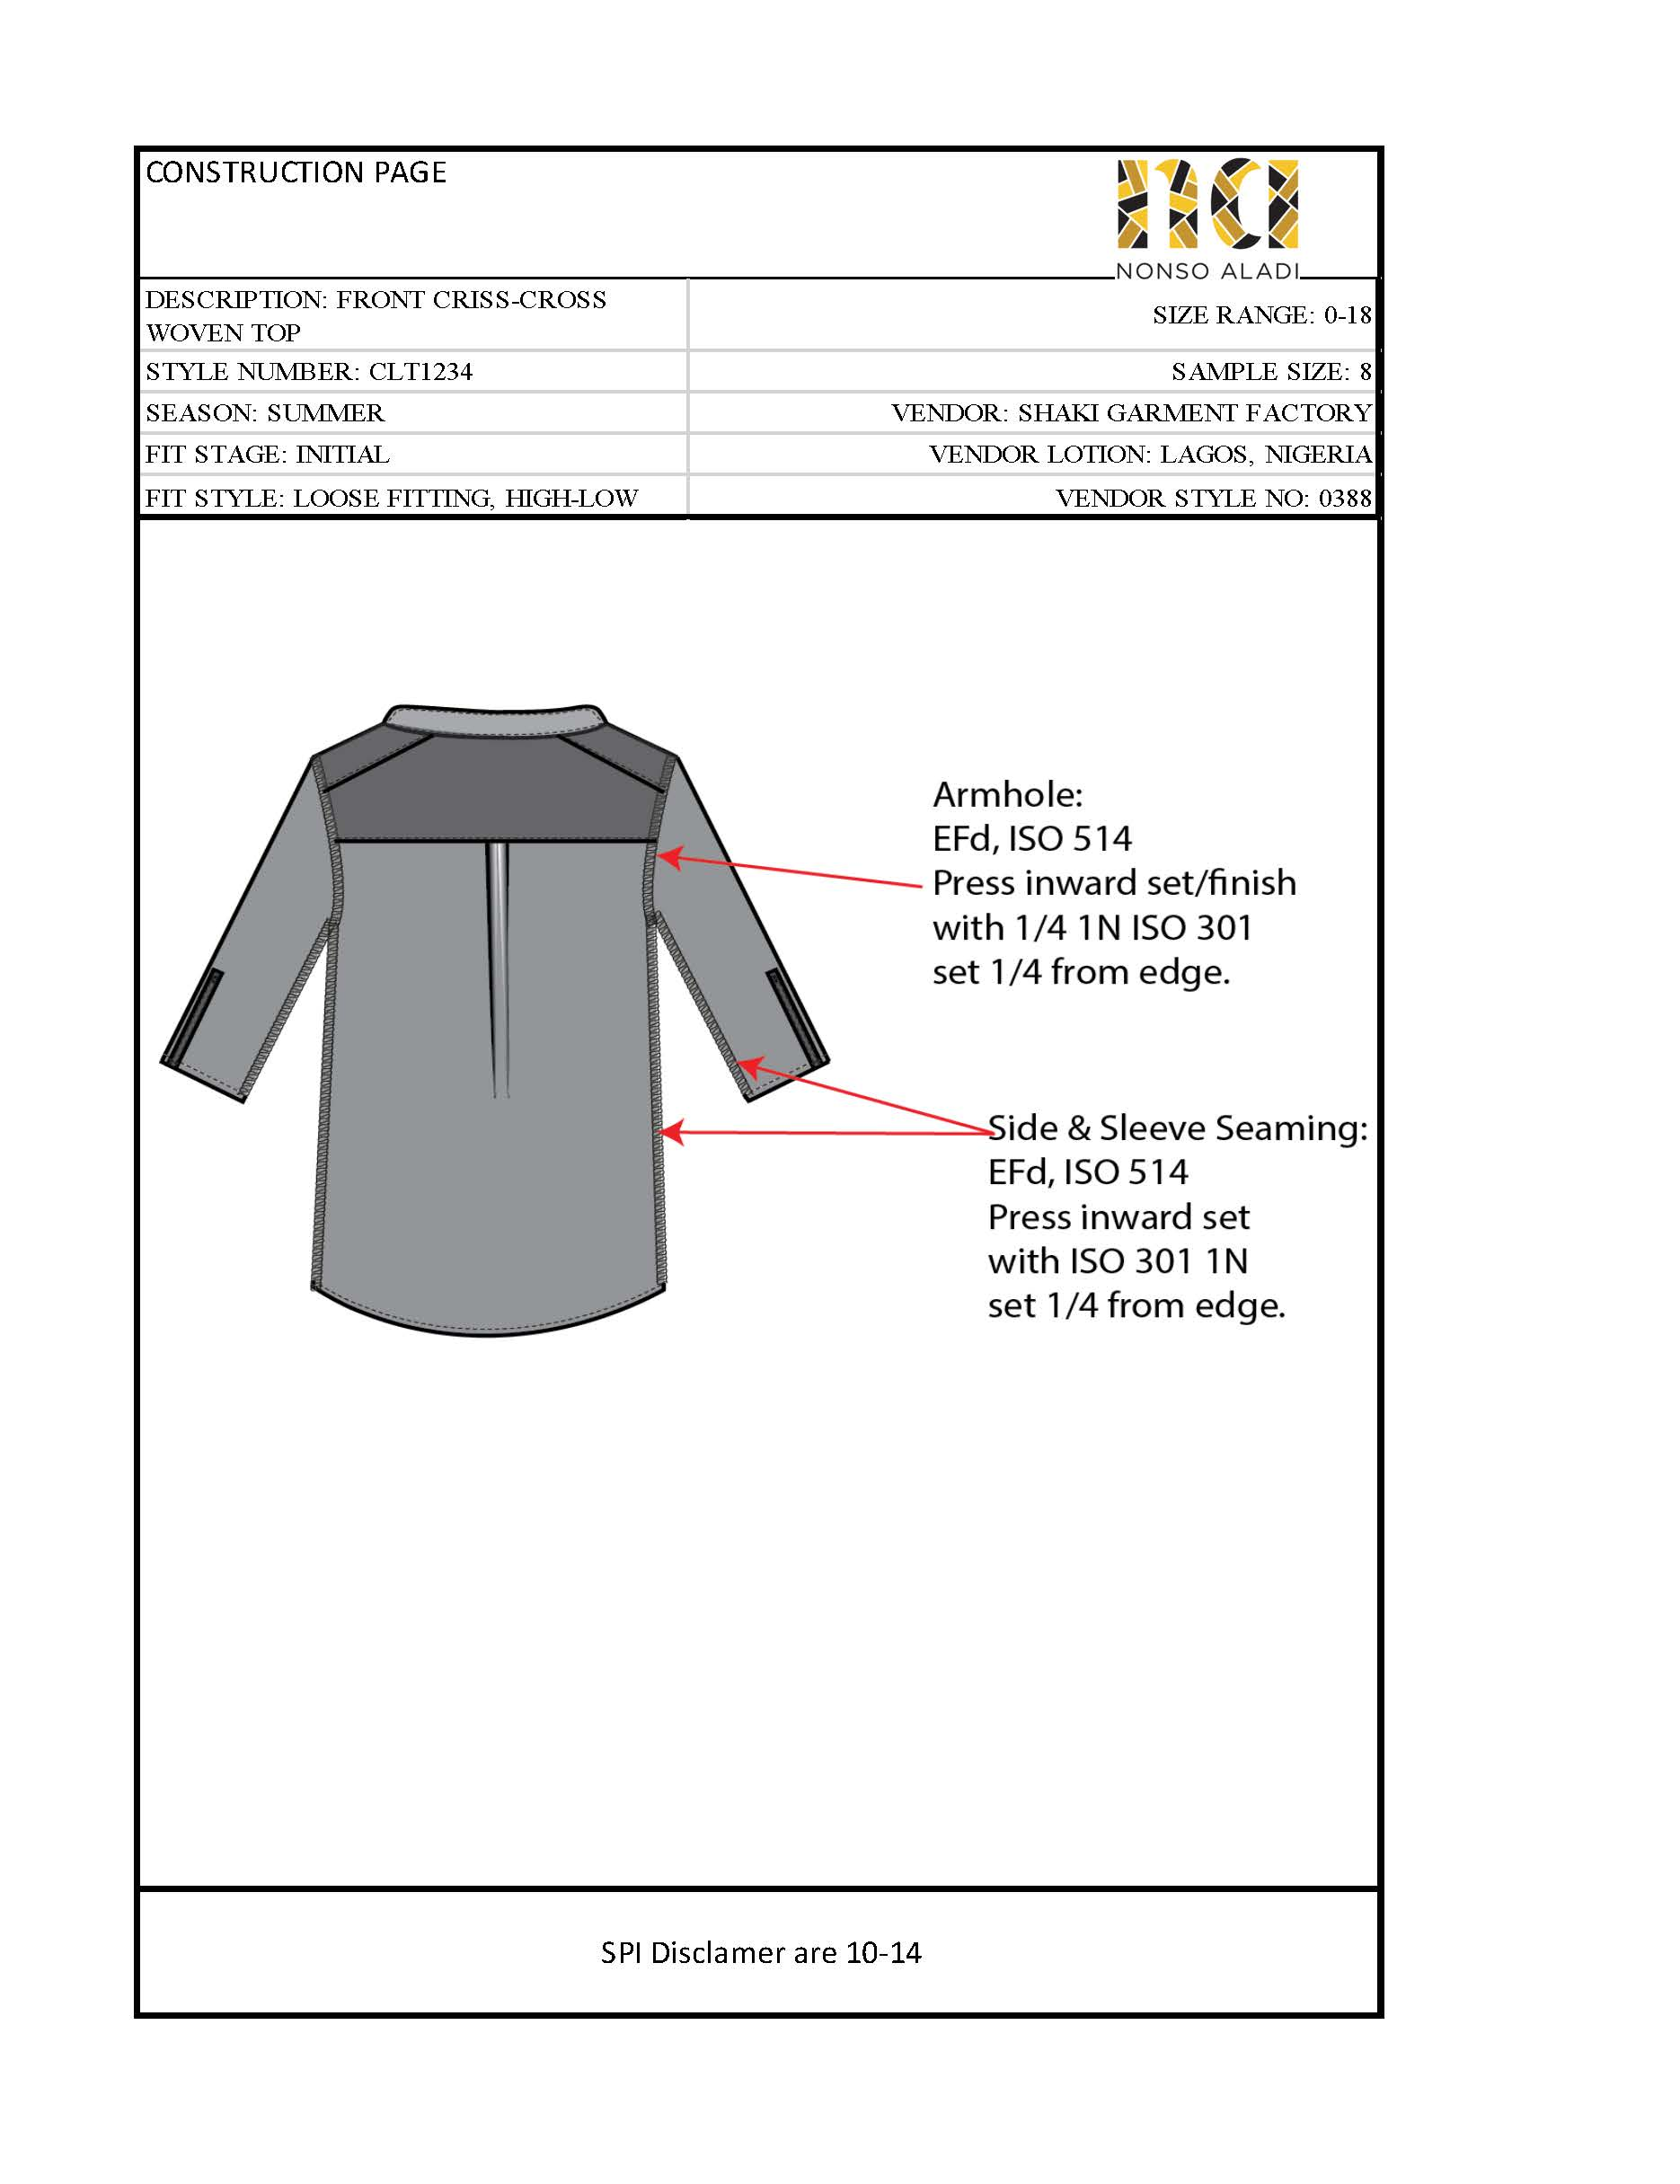 Blouse page_Page_08.jpg